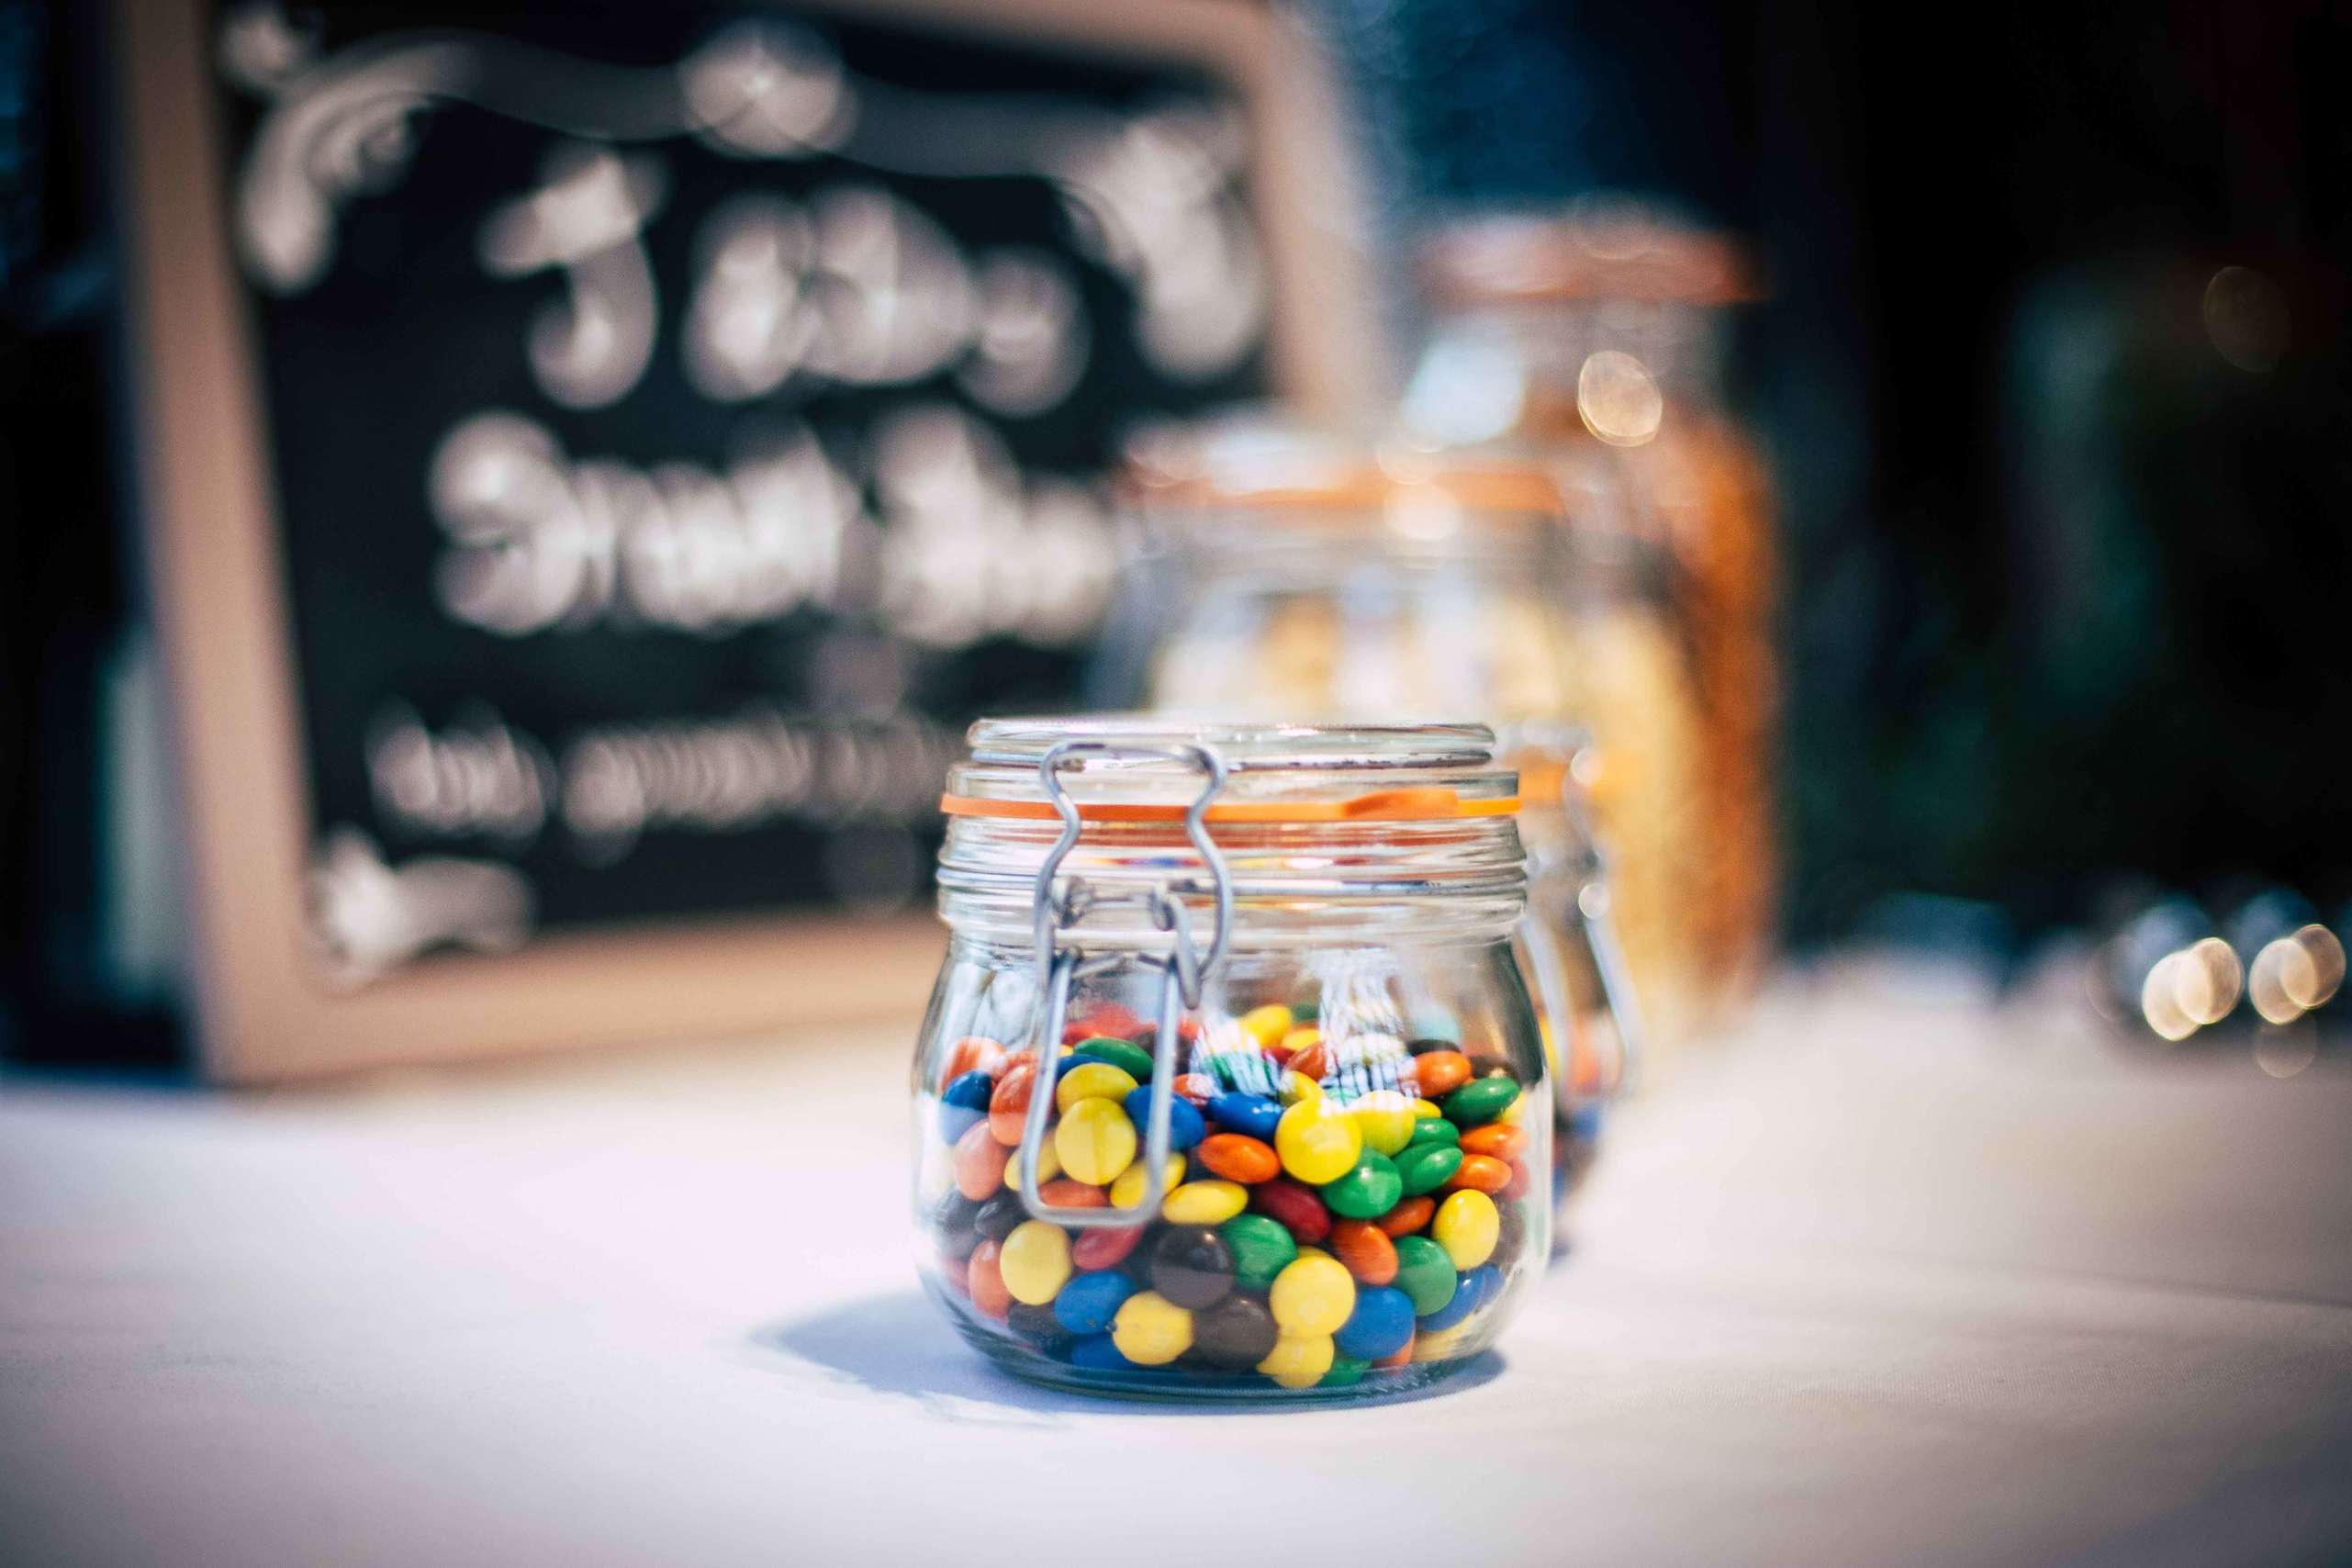 A glass jar filled with smarties.